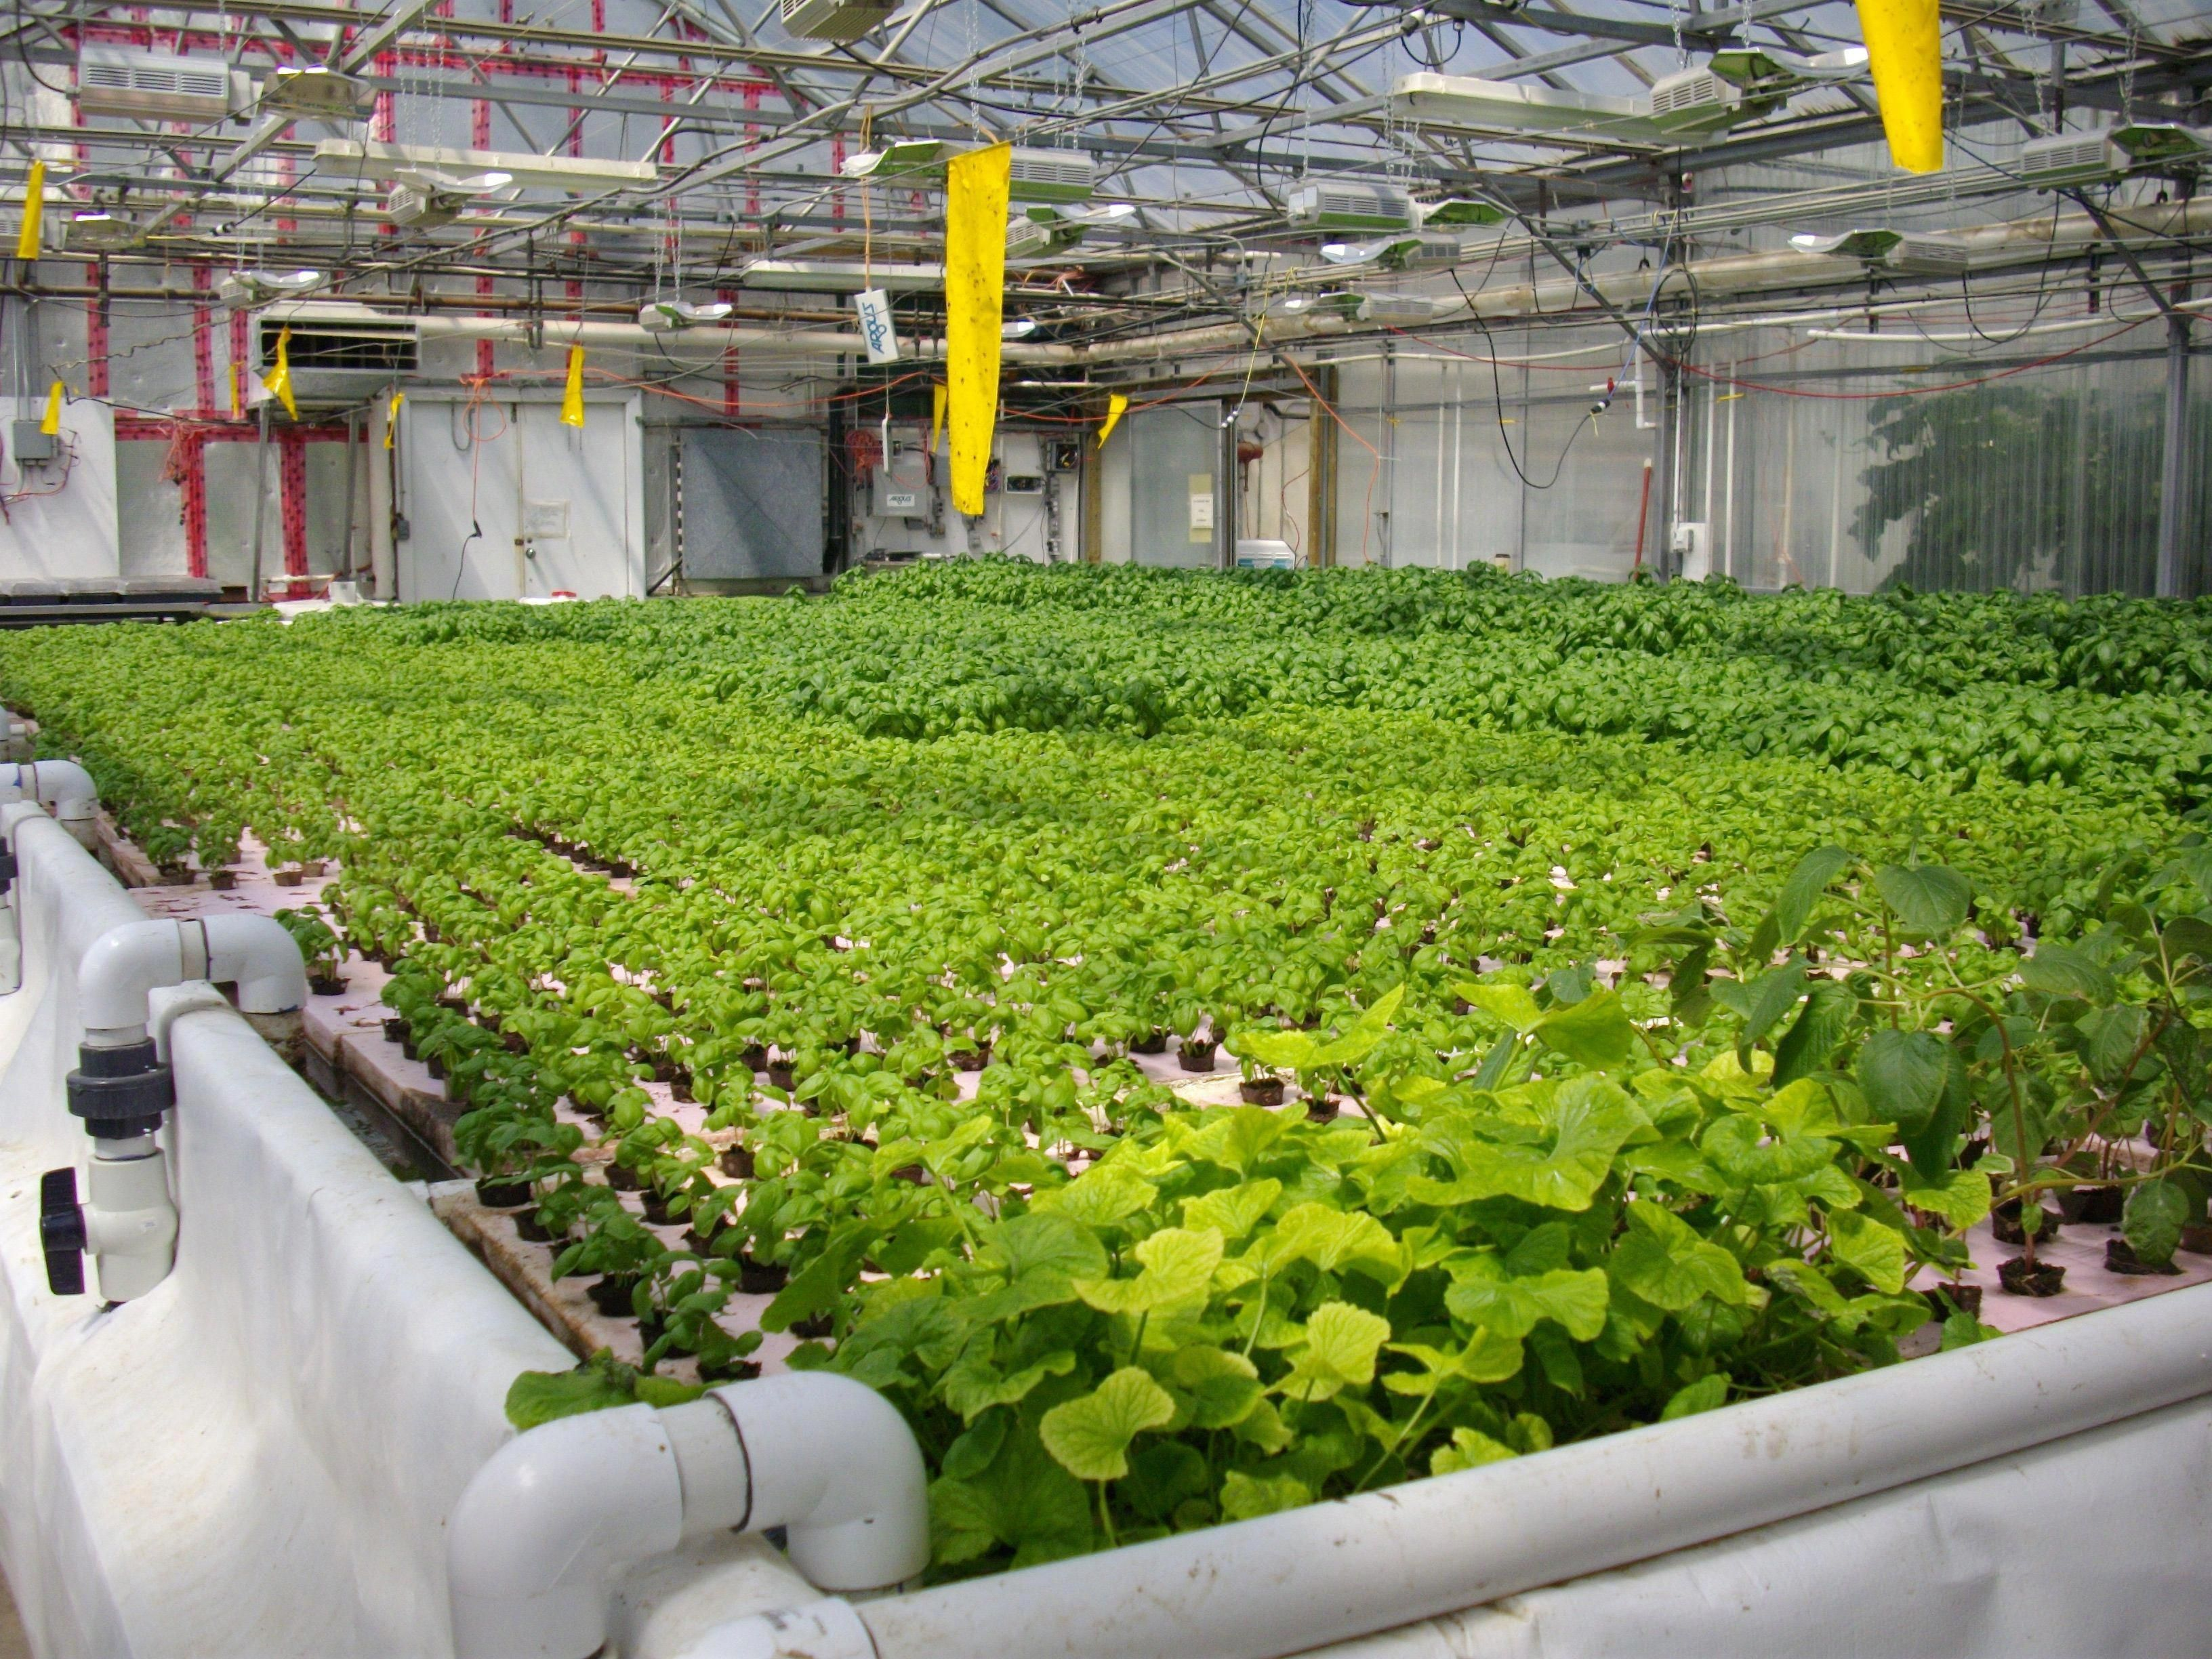 Hydroponic systems are used in residential and commercial